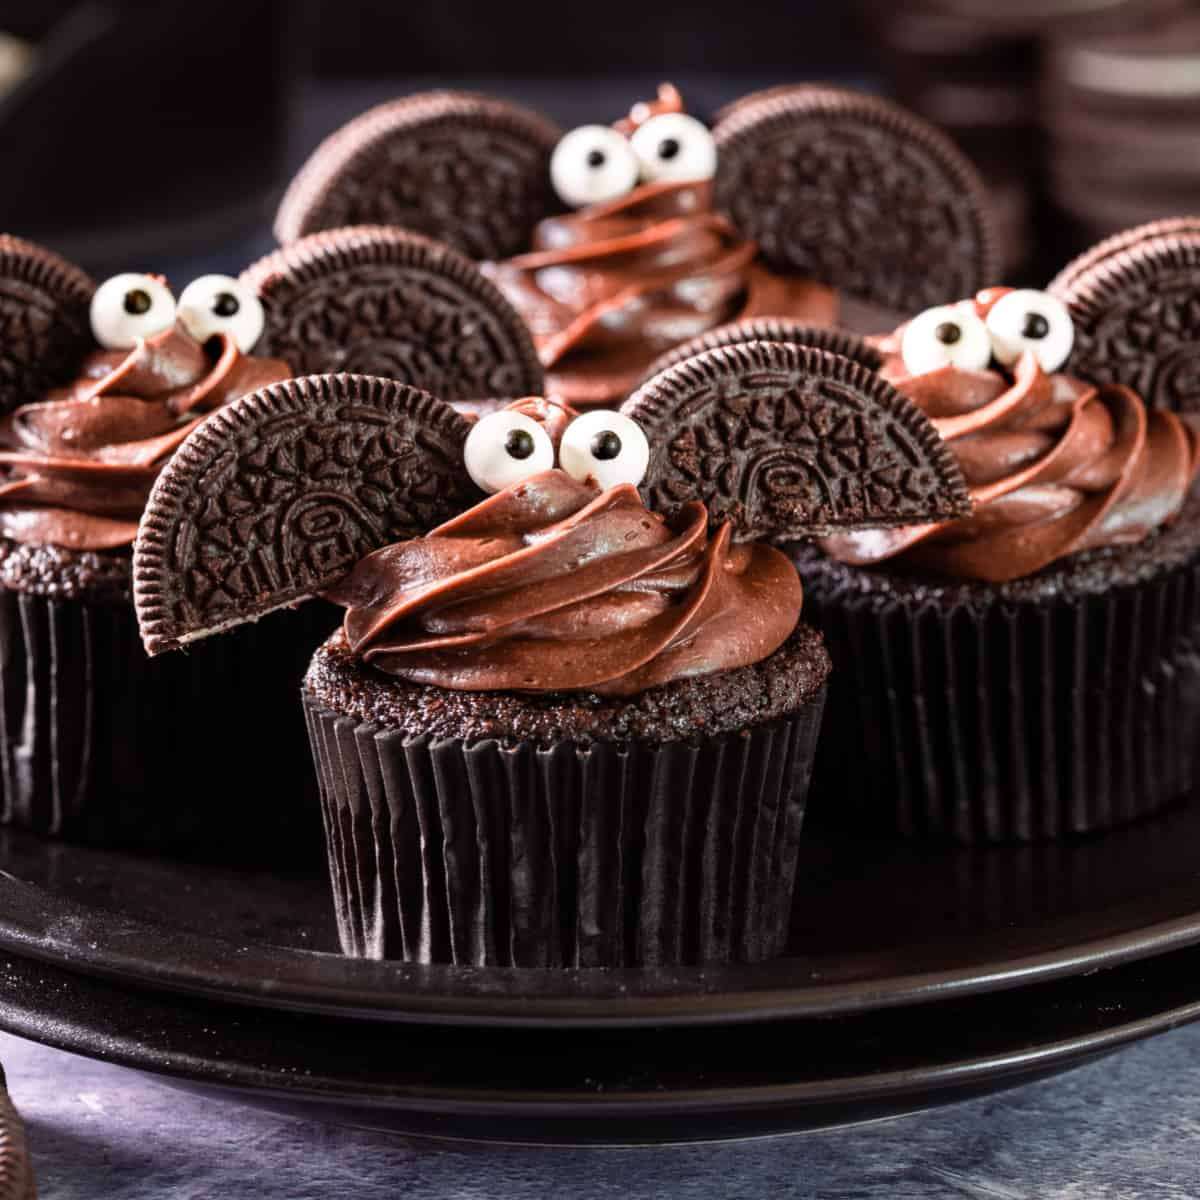 Halloween cupcakes on a black plate.